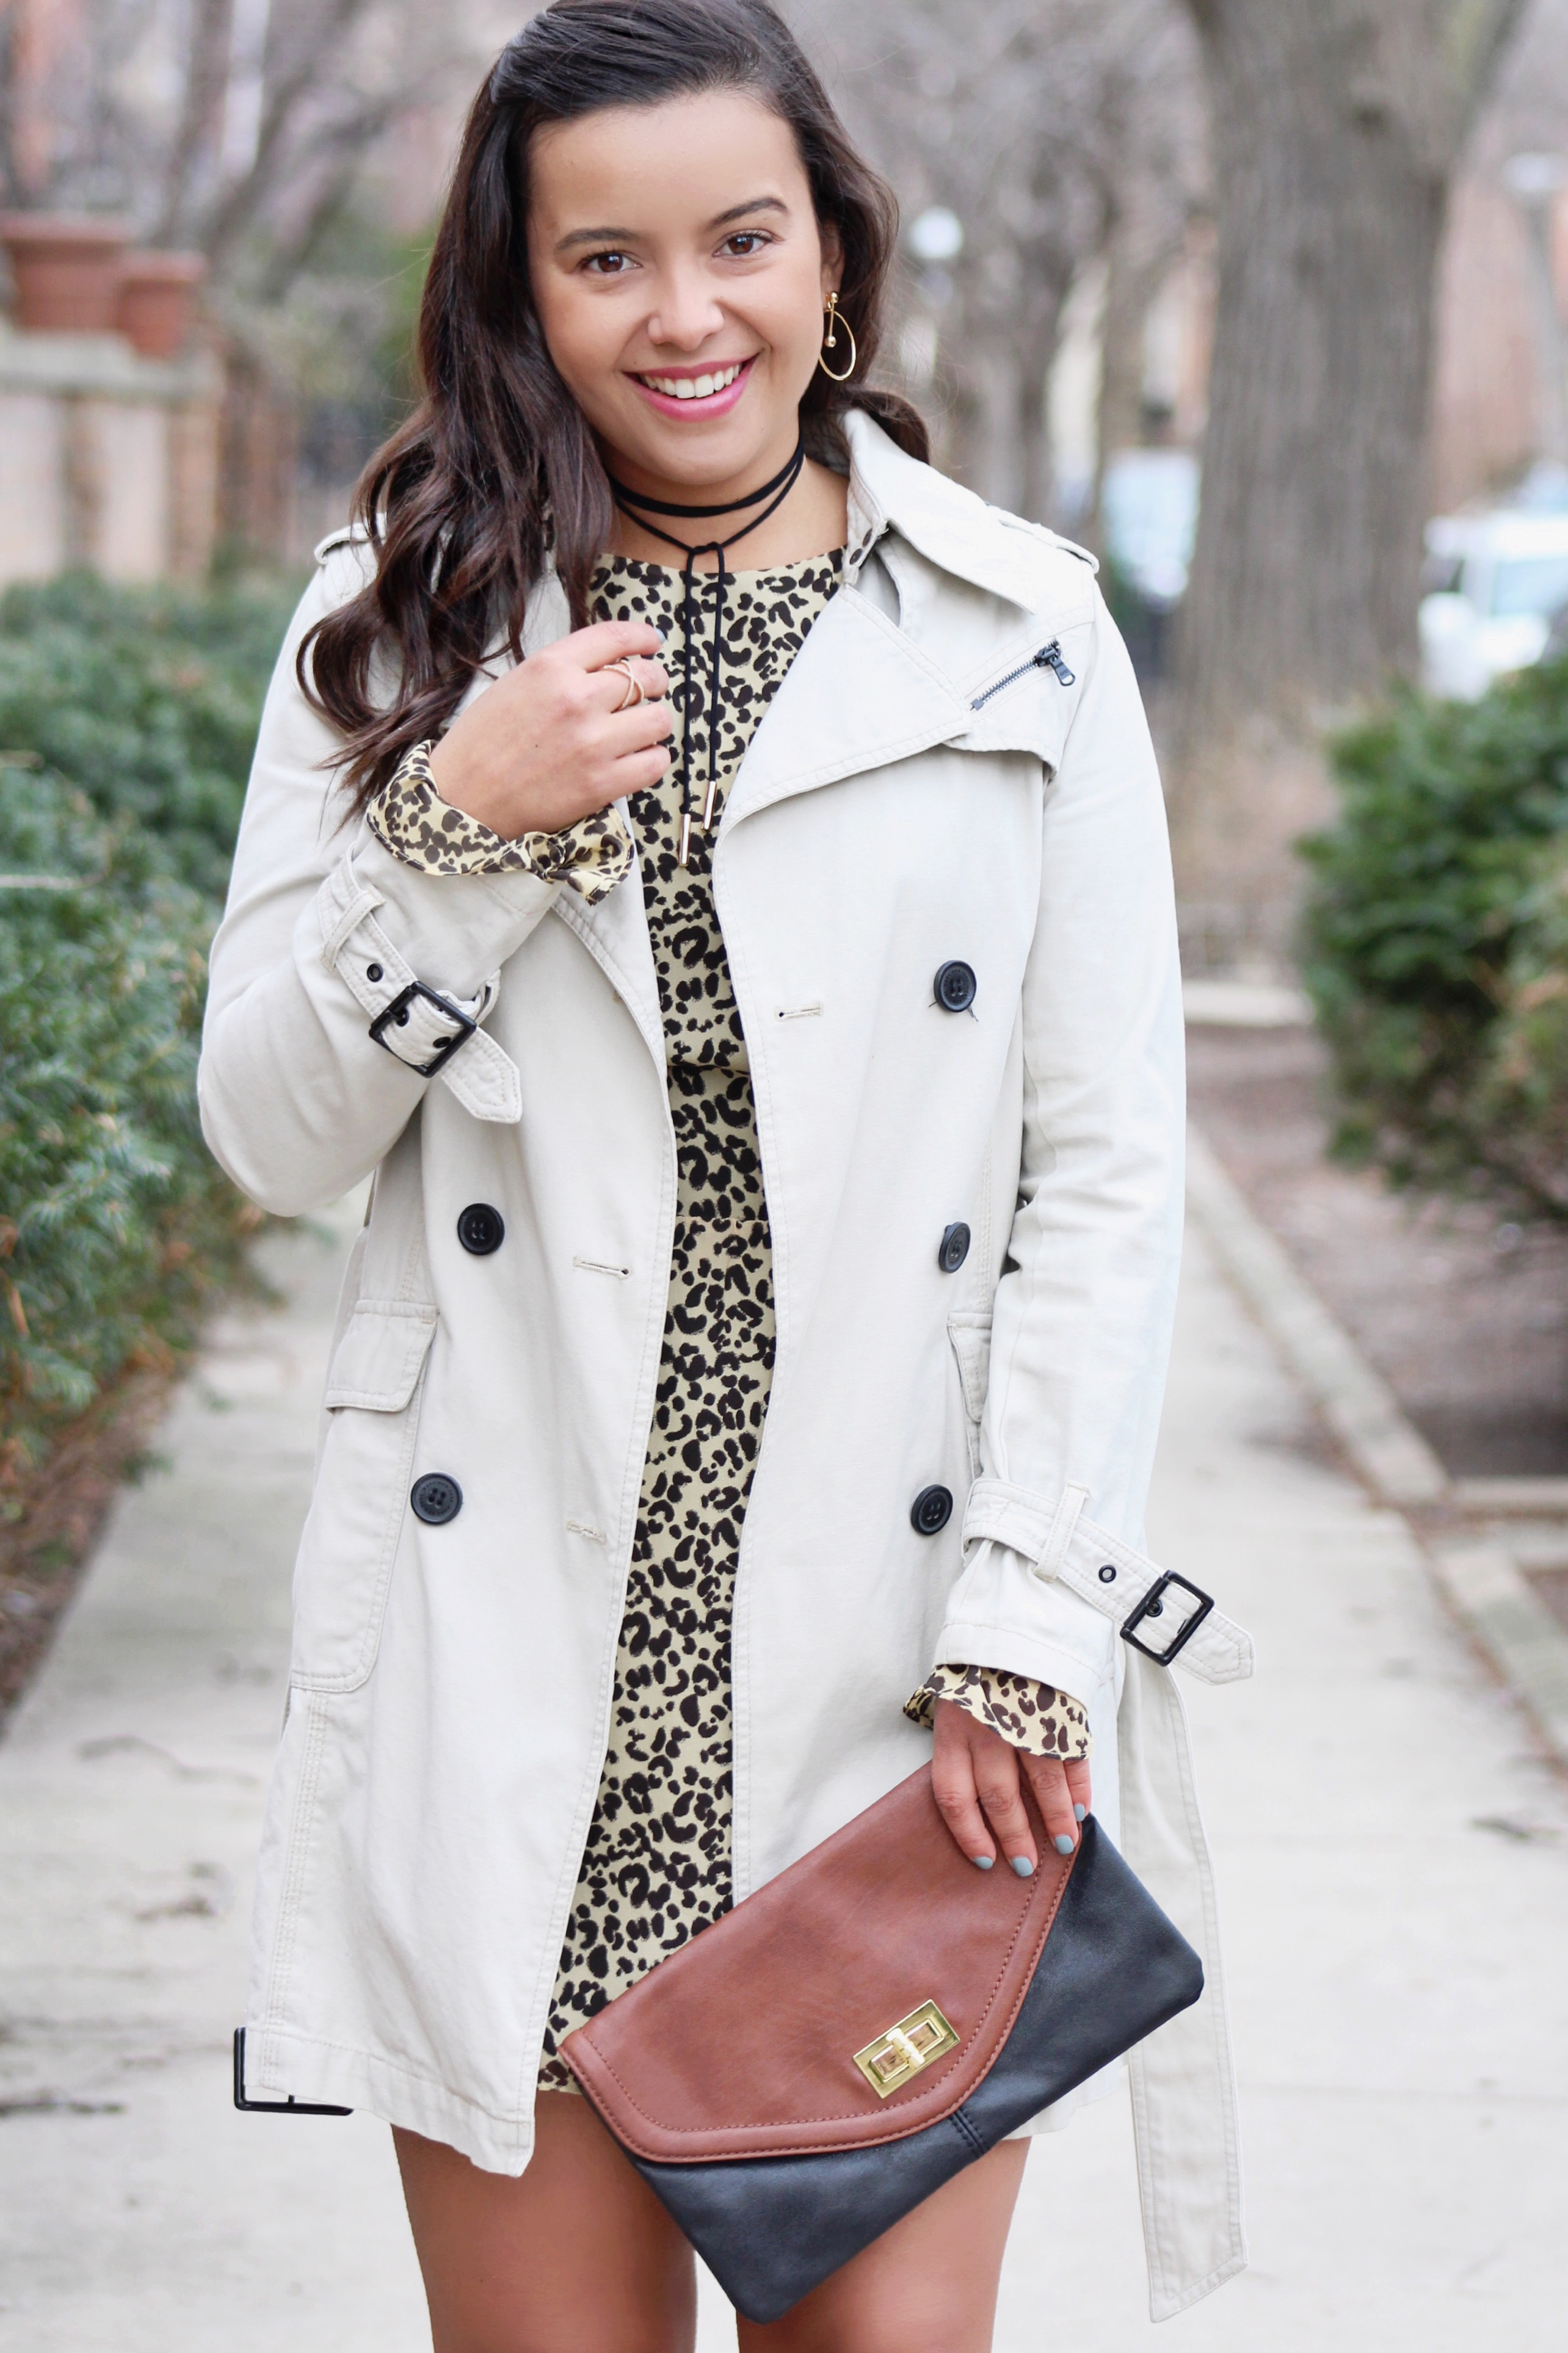 STYLING A LEOPARD PRINTED DRESS, STYLING A LEOPARD PRINTED DRESS – PART 2